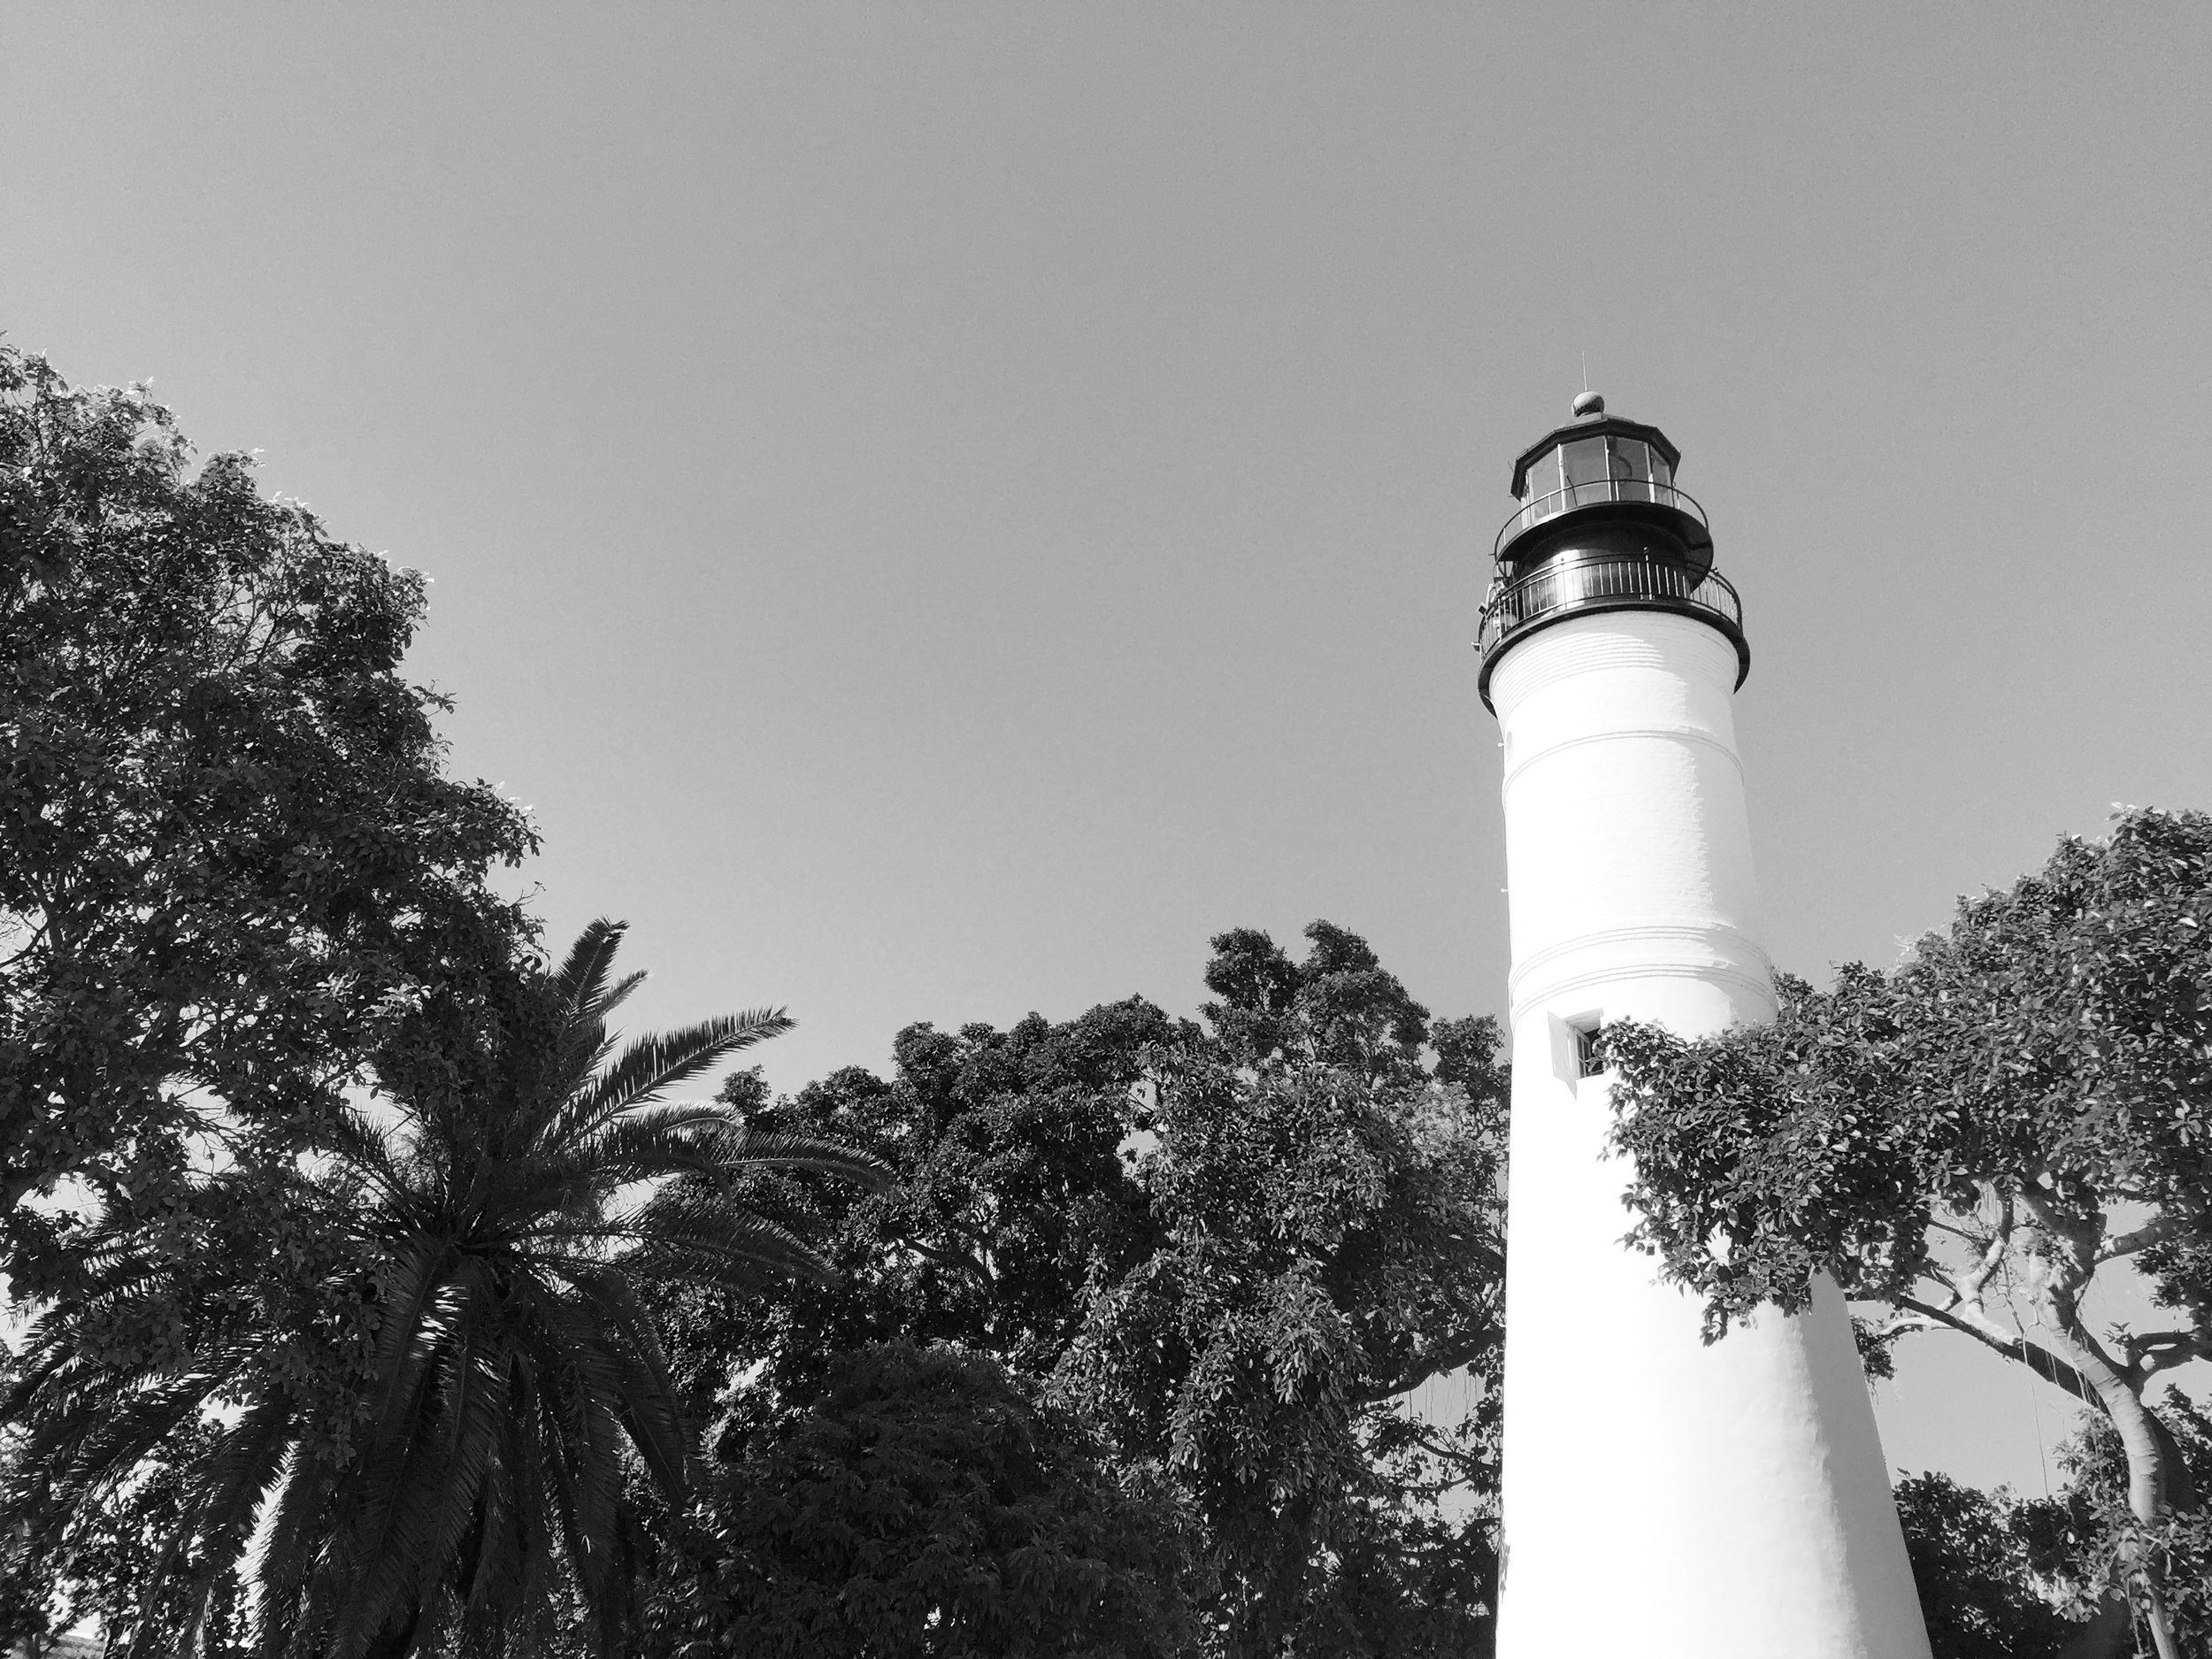 amy_chen_design_key_west_lighthouse_2_BW.jpg